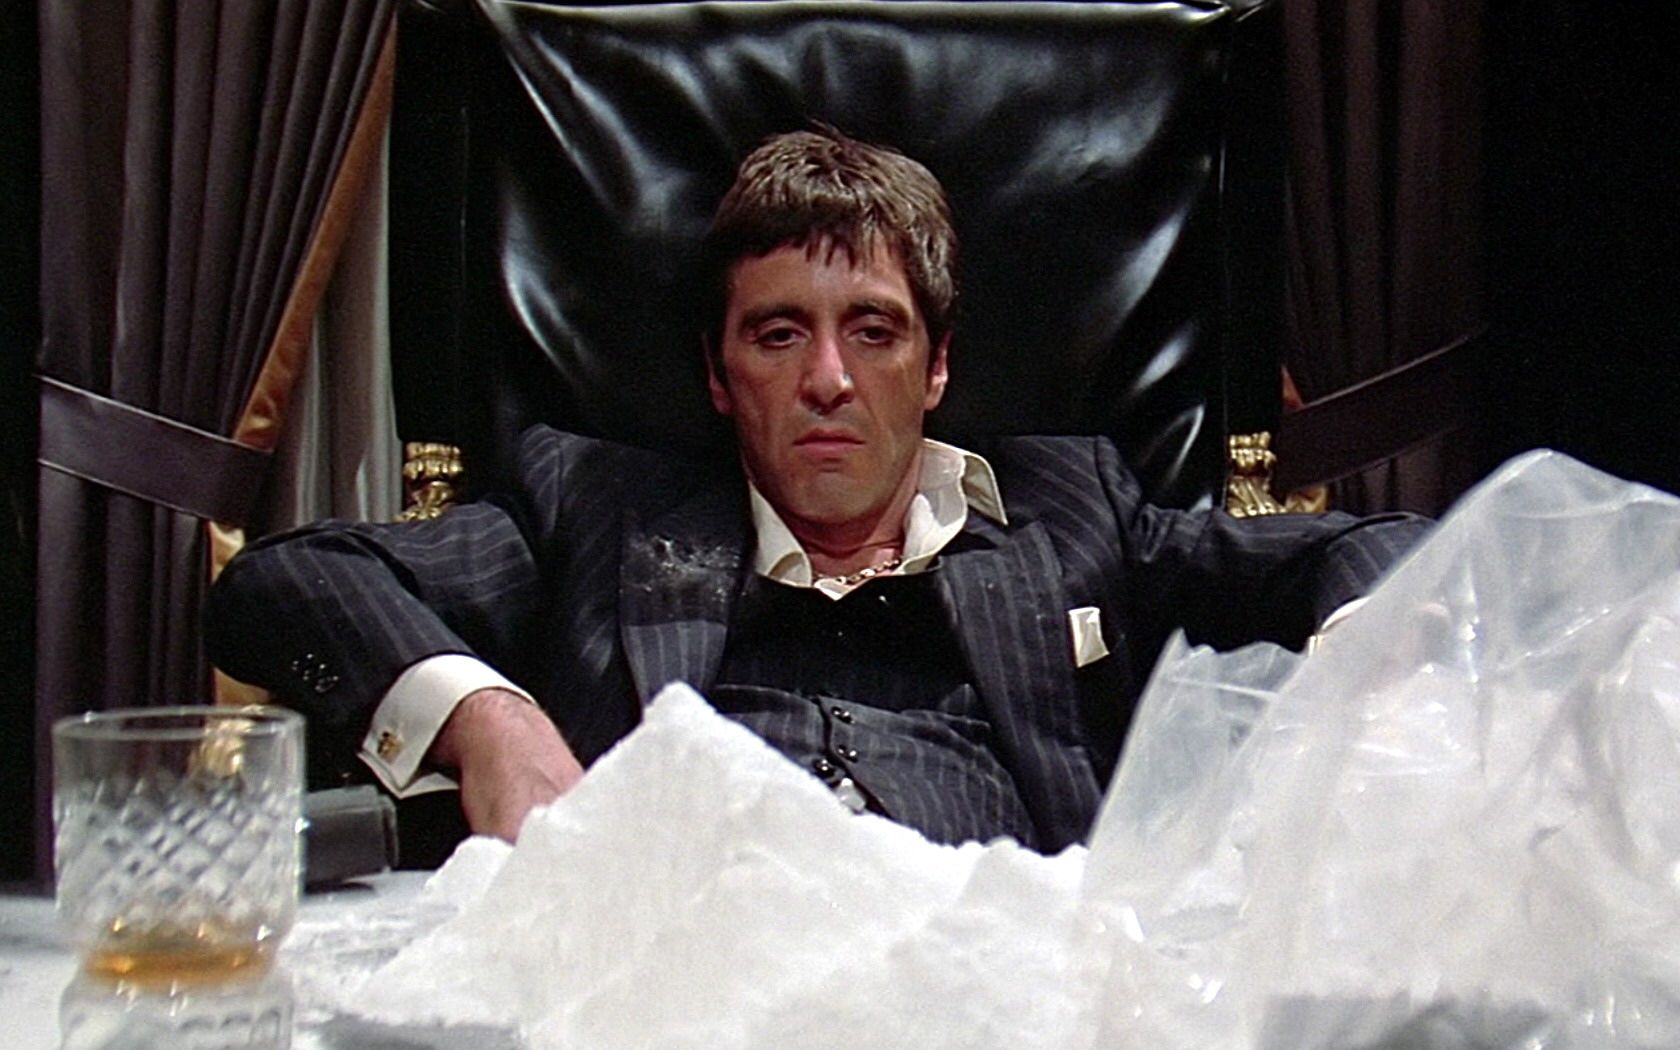 Image from http://www.cutthecap.com/wp-content/uploads/2015/03/scarface.jpg.